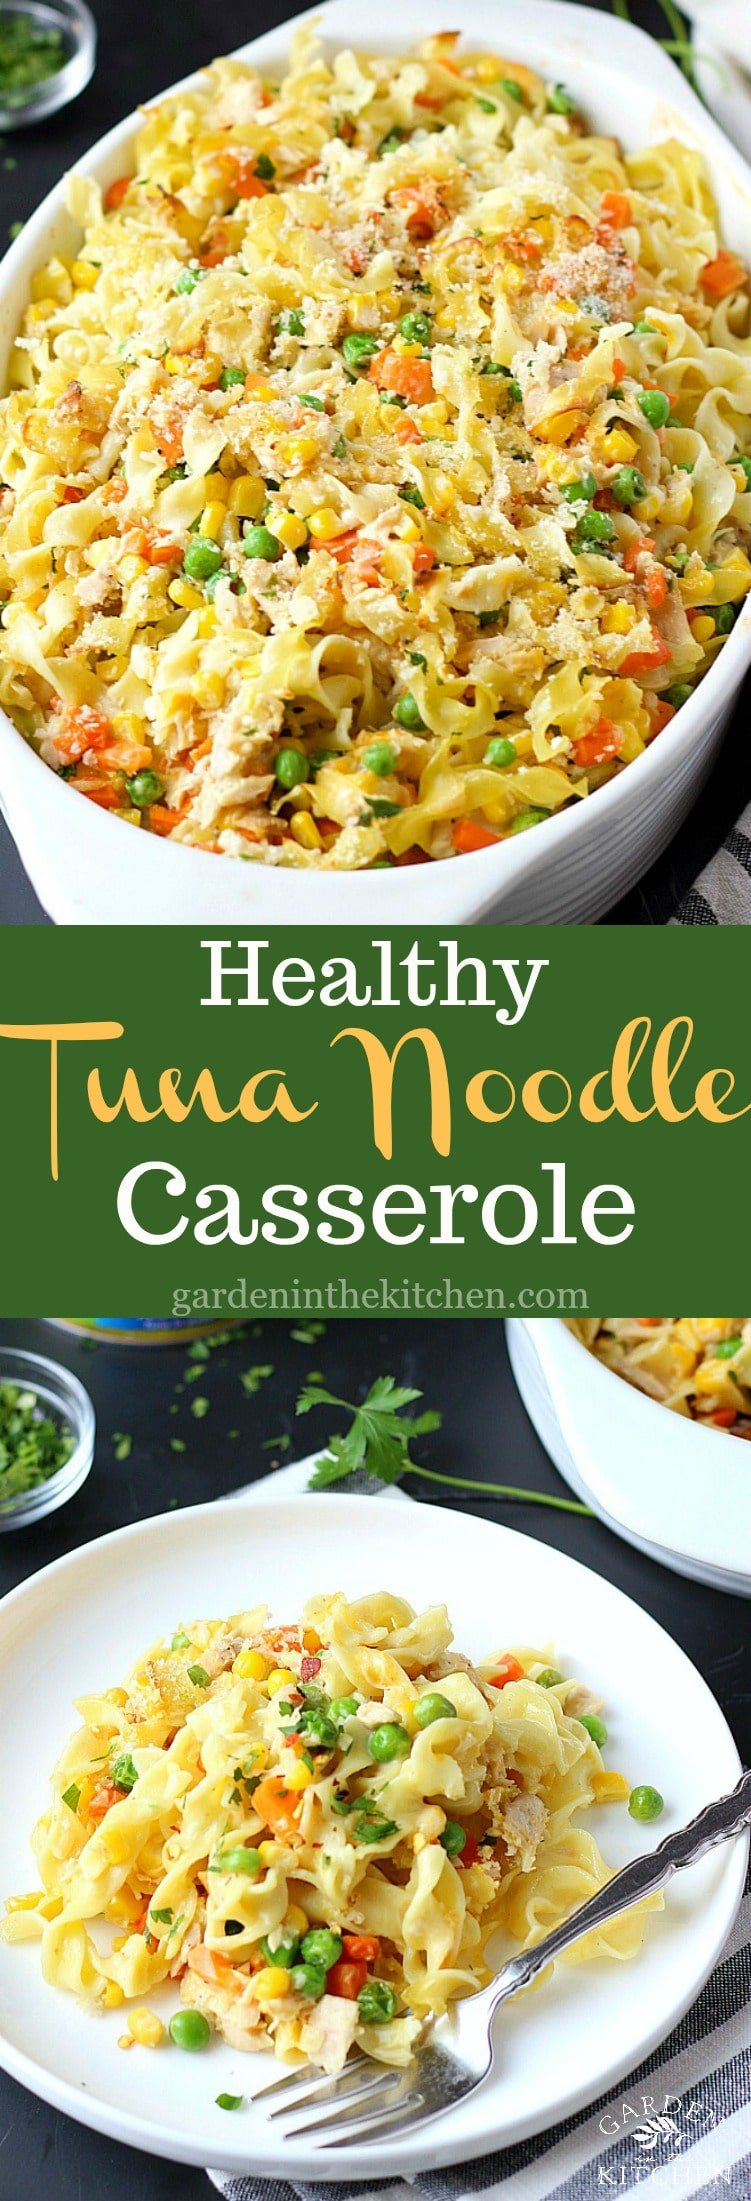 Vegetable Tuna Casserole